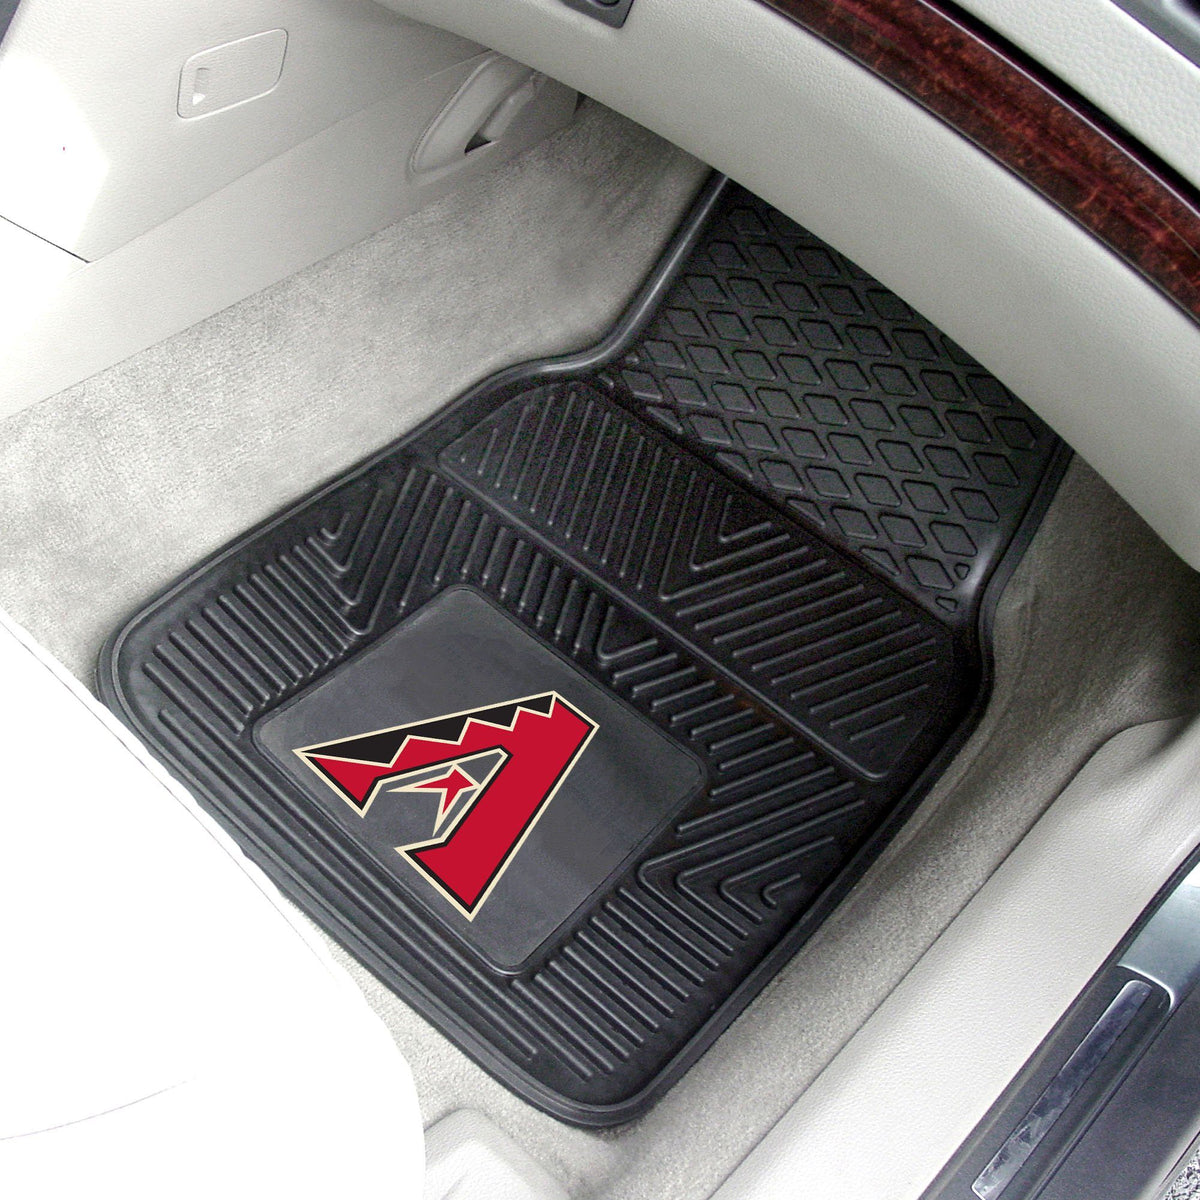 MLB - Vinyl Car Mat, 2-Piece Set MLB Mats, Front Car Mats, 2-pc Vinyl Car Mat Set, MLB, Auto Fan Mats Arizona Diamondbacks